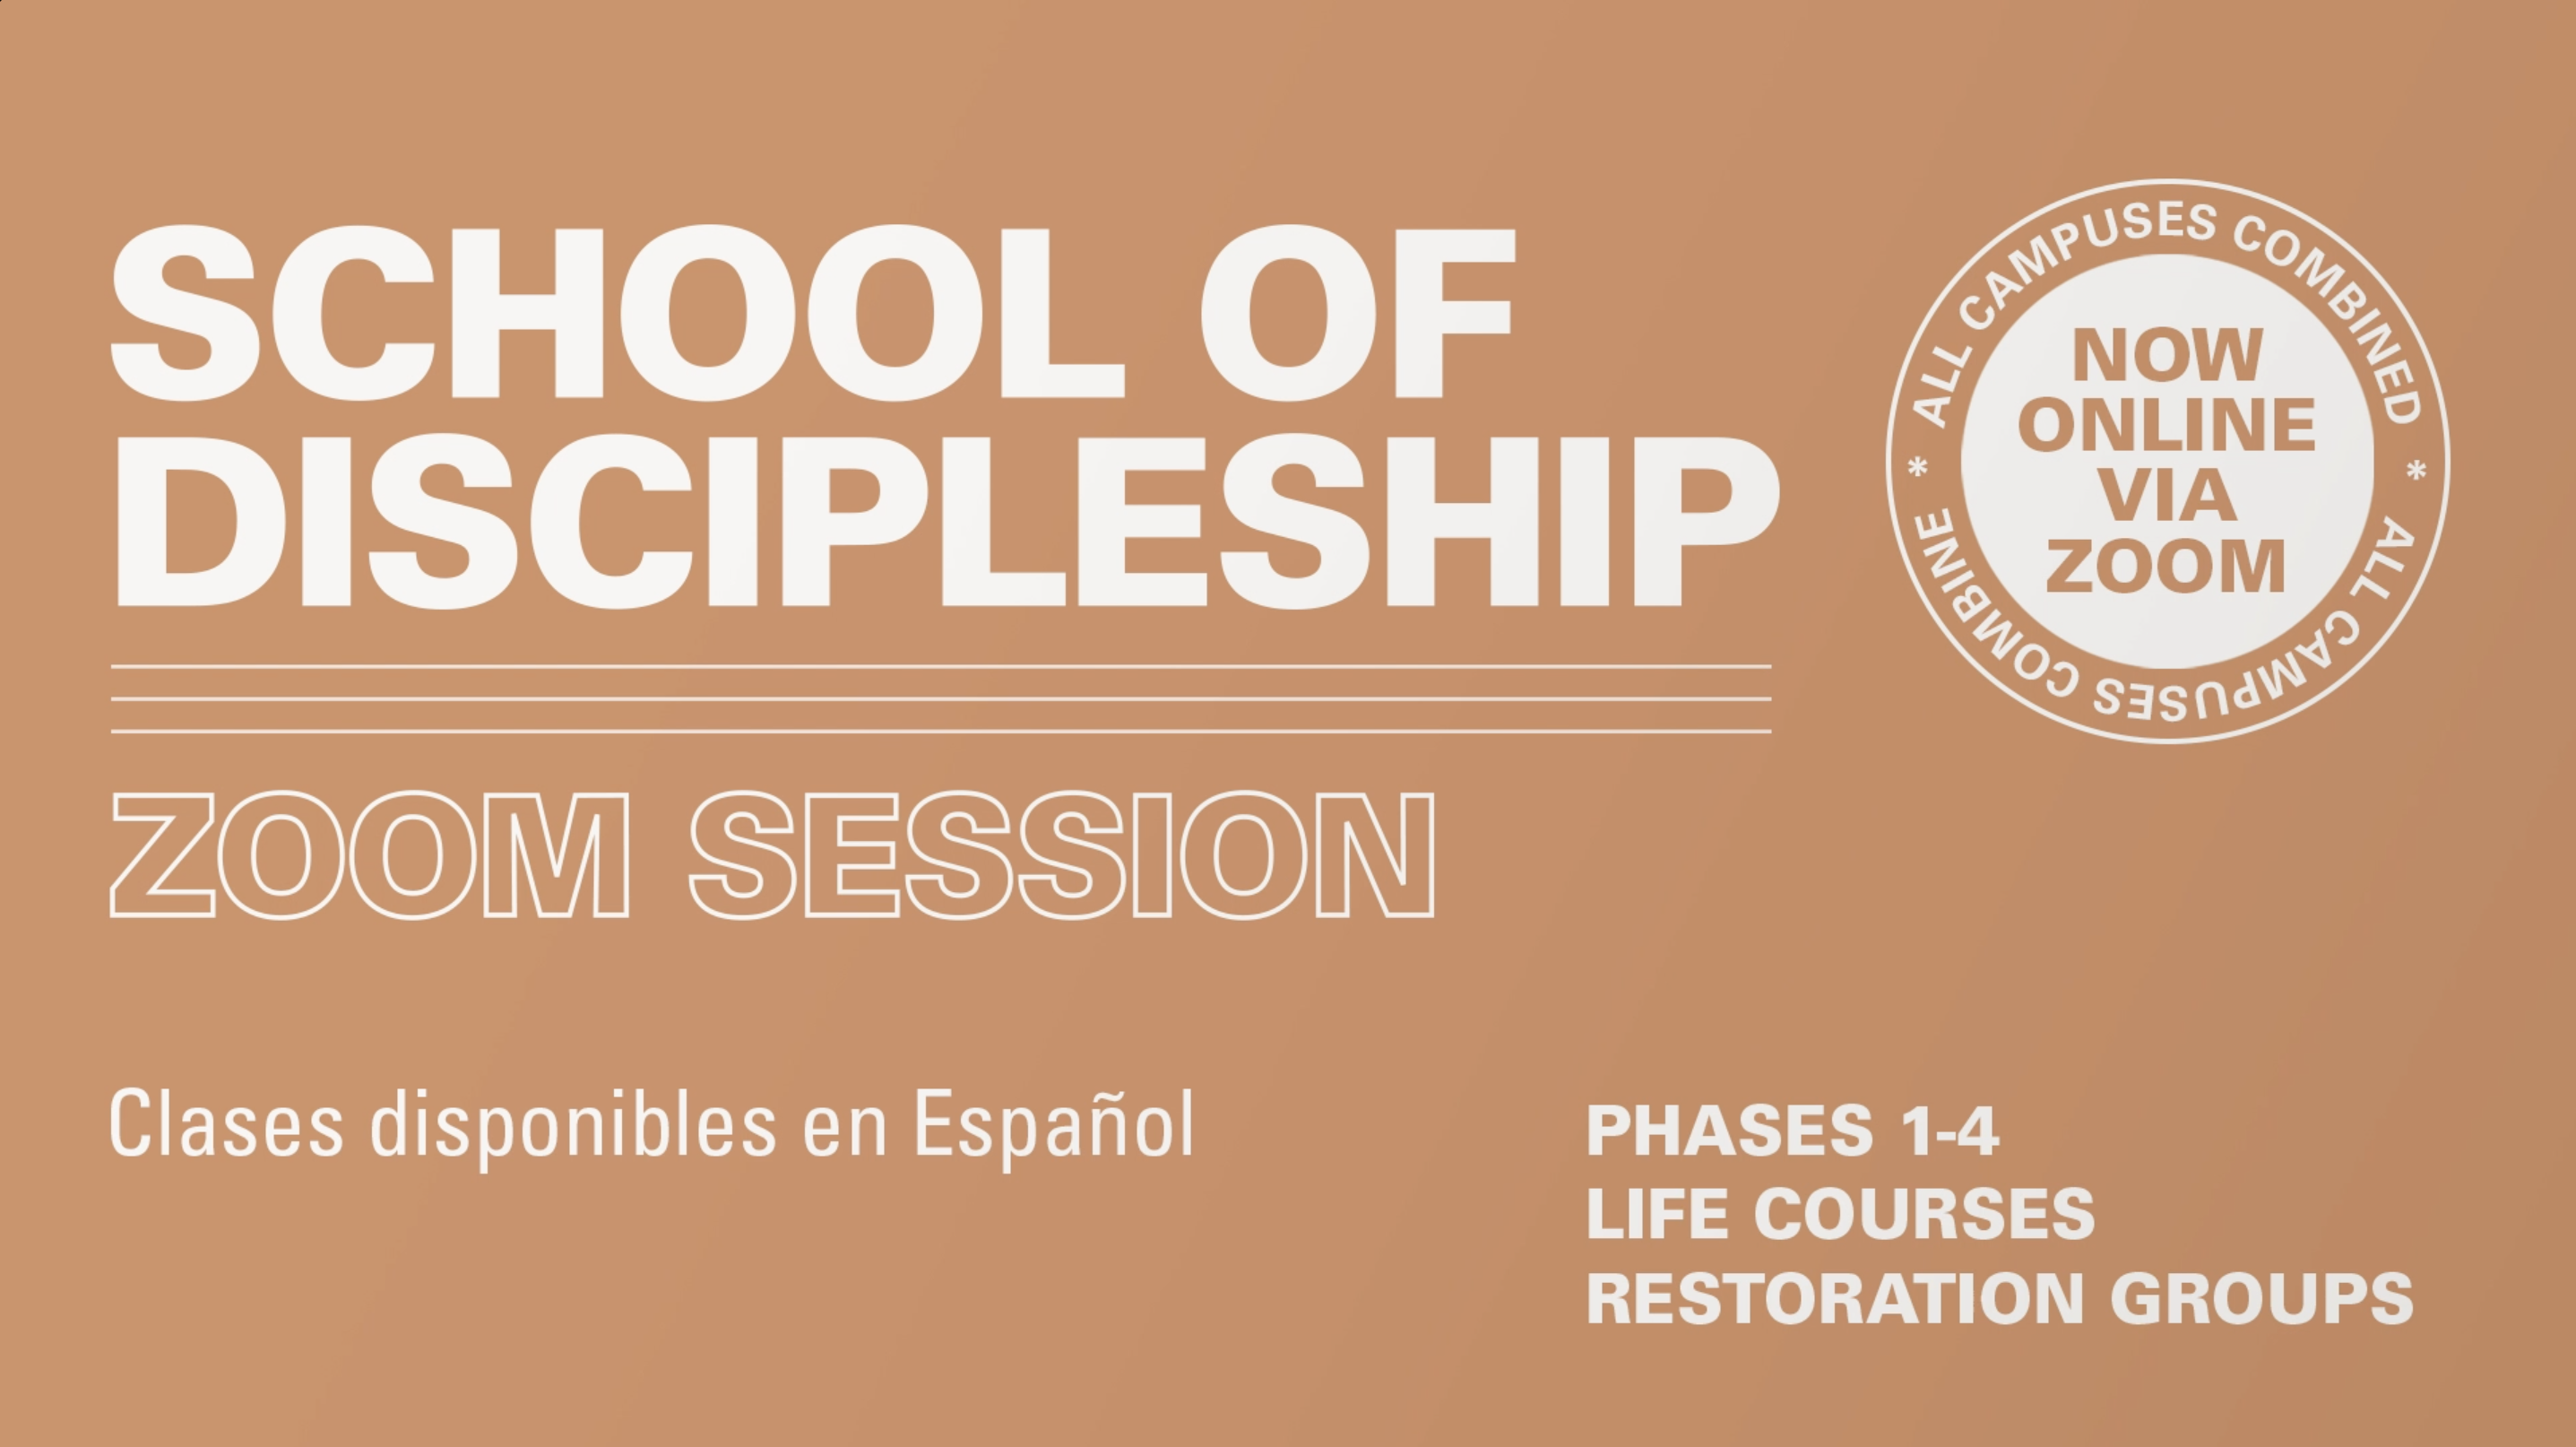 School of Discipleship at the Spartanburg campus